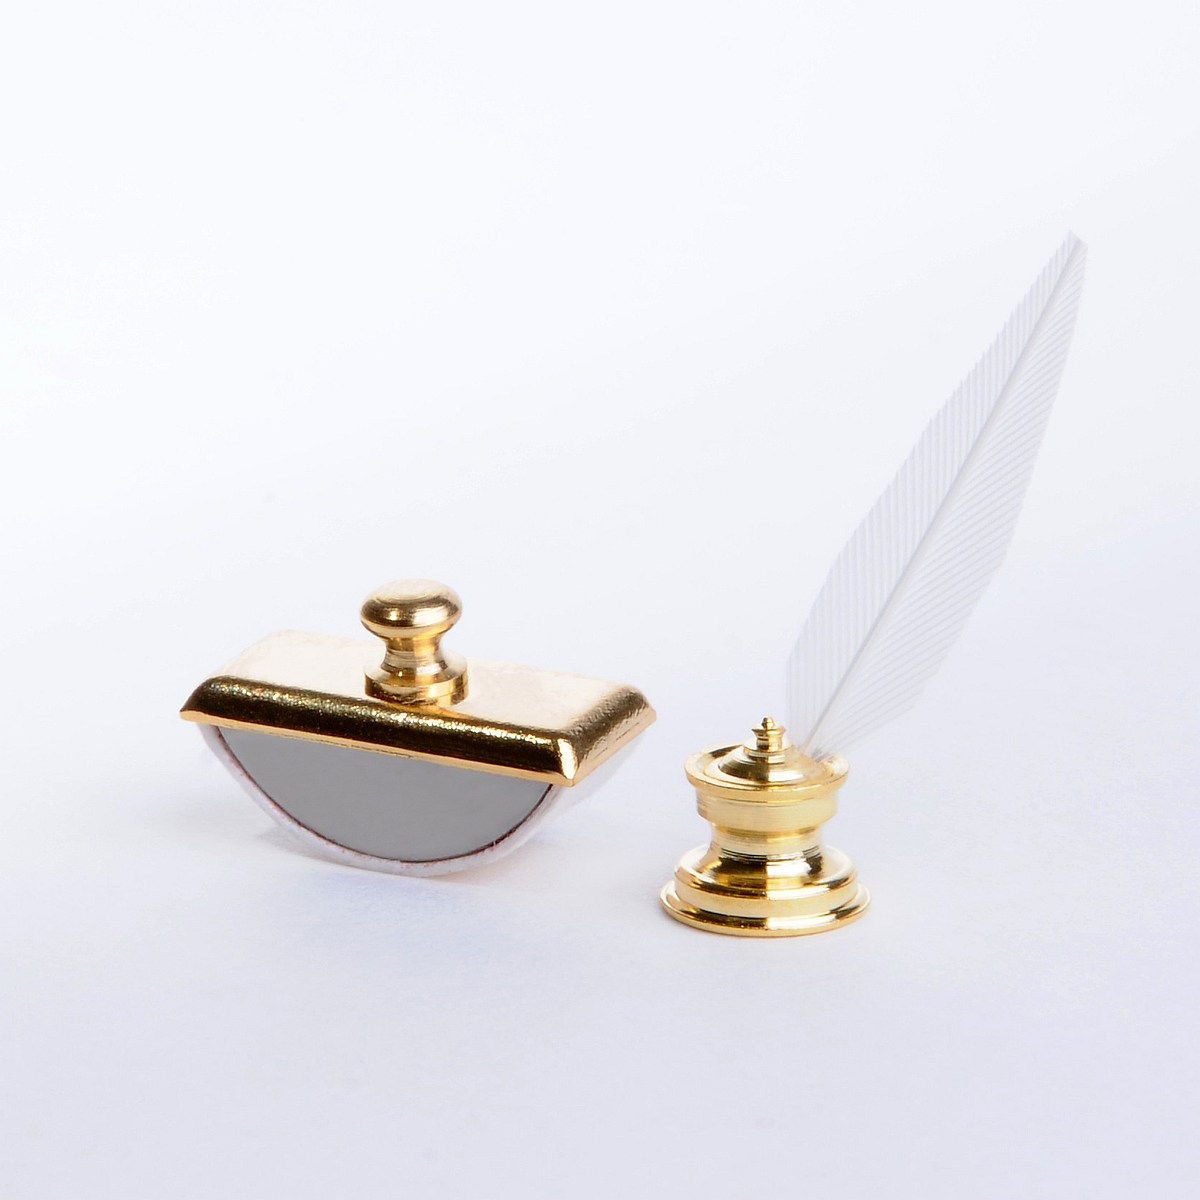 Inkwell with quill, blotter